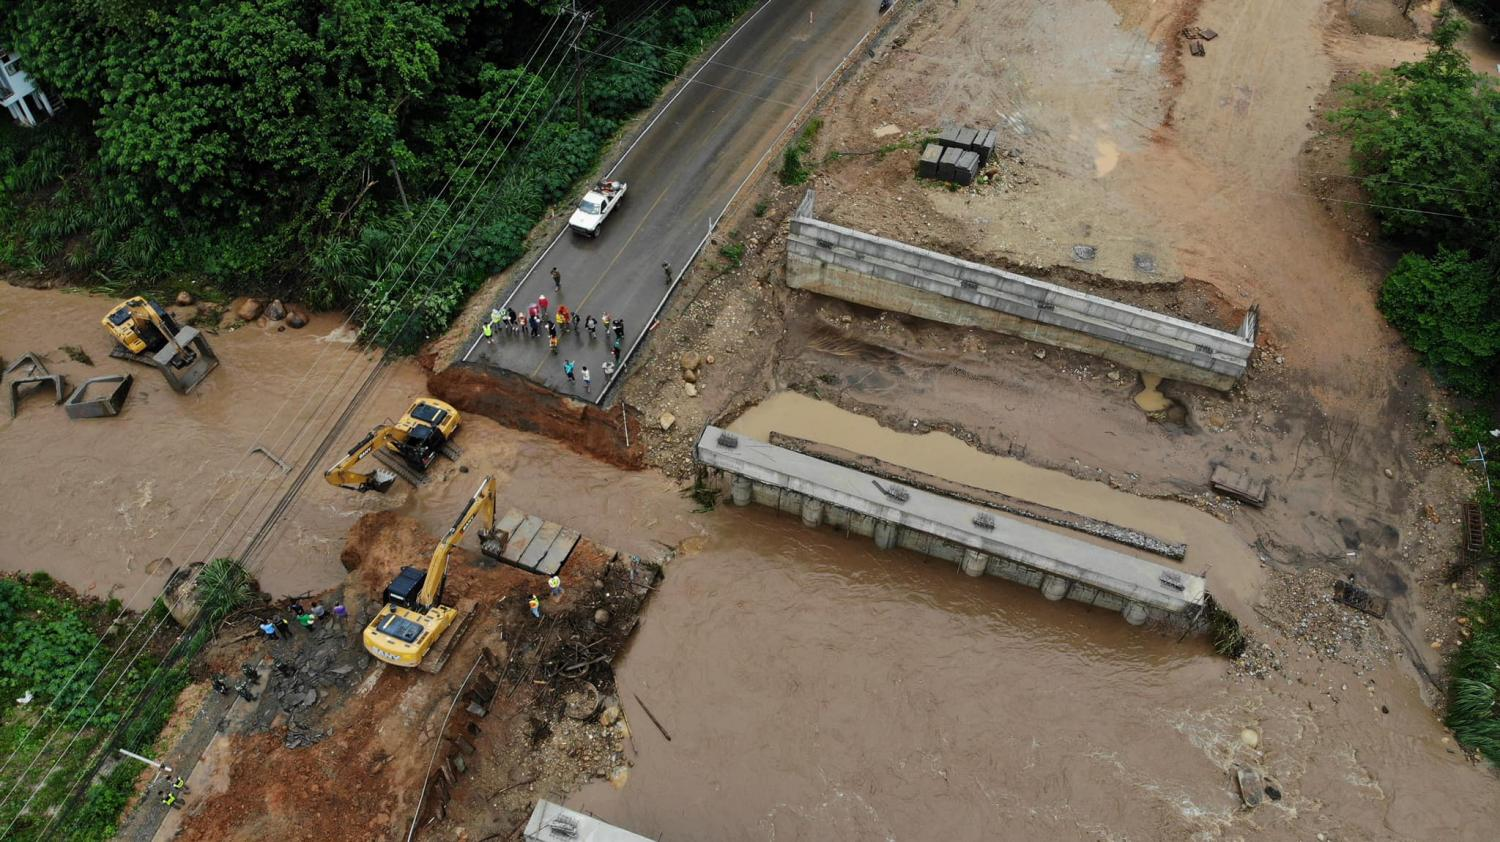 Hasty service: Workers repair the Chiang Mai-Chiang Rai road, which had flooded after torrential water runoff in Doi Saket district of Chiang Mai on Friday night. The repair was expected to be wrapped up by yesterday evening.